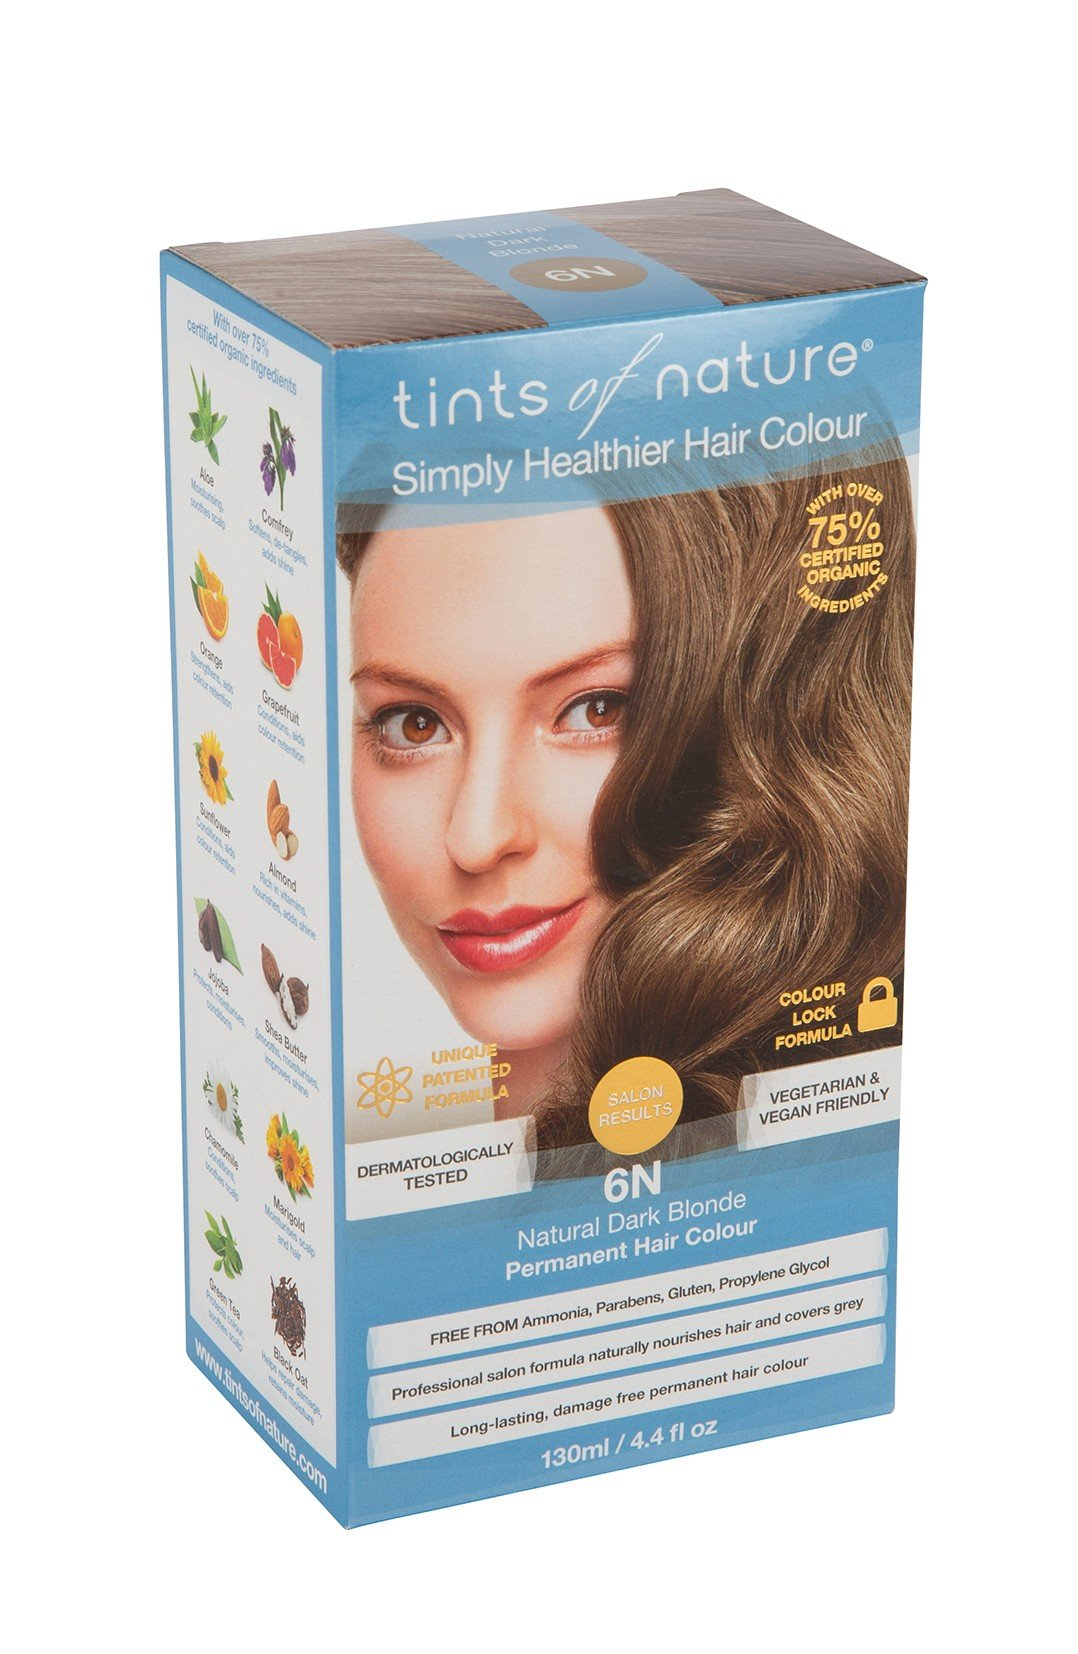 Tints Of Nature Natural Dark Blonde 130Ml Bundle (Pack Of 2) by Tints of Nature